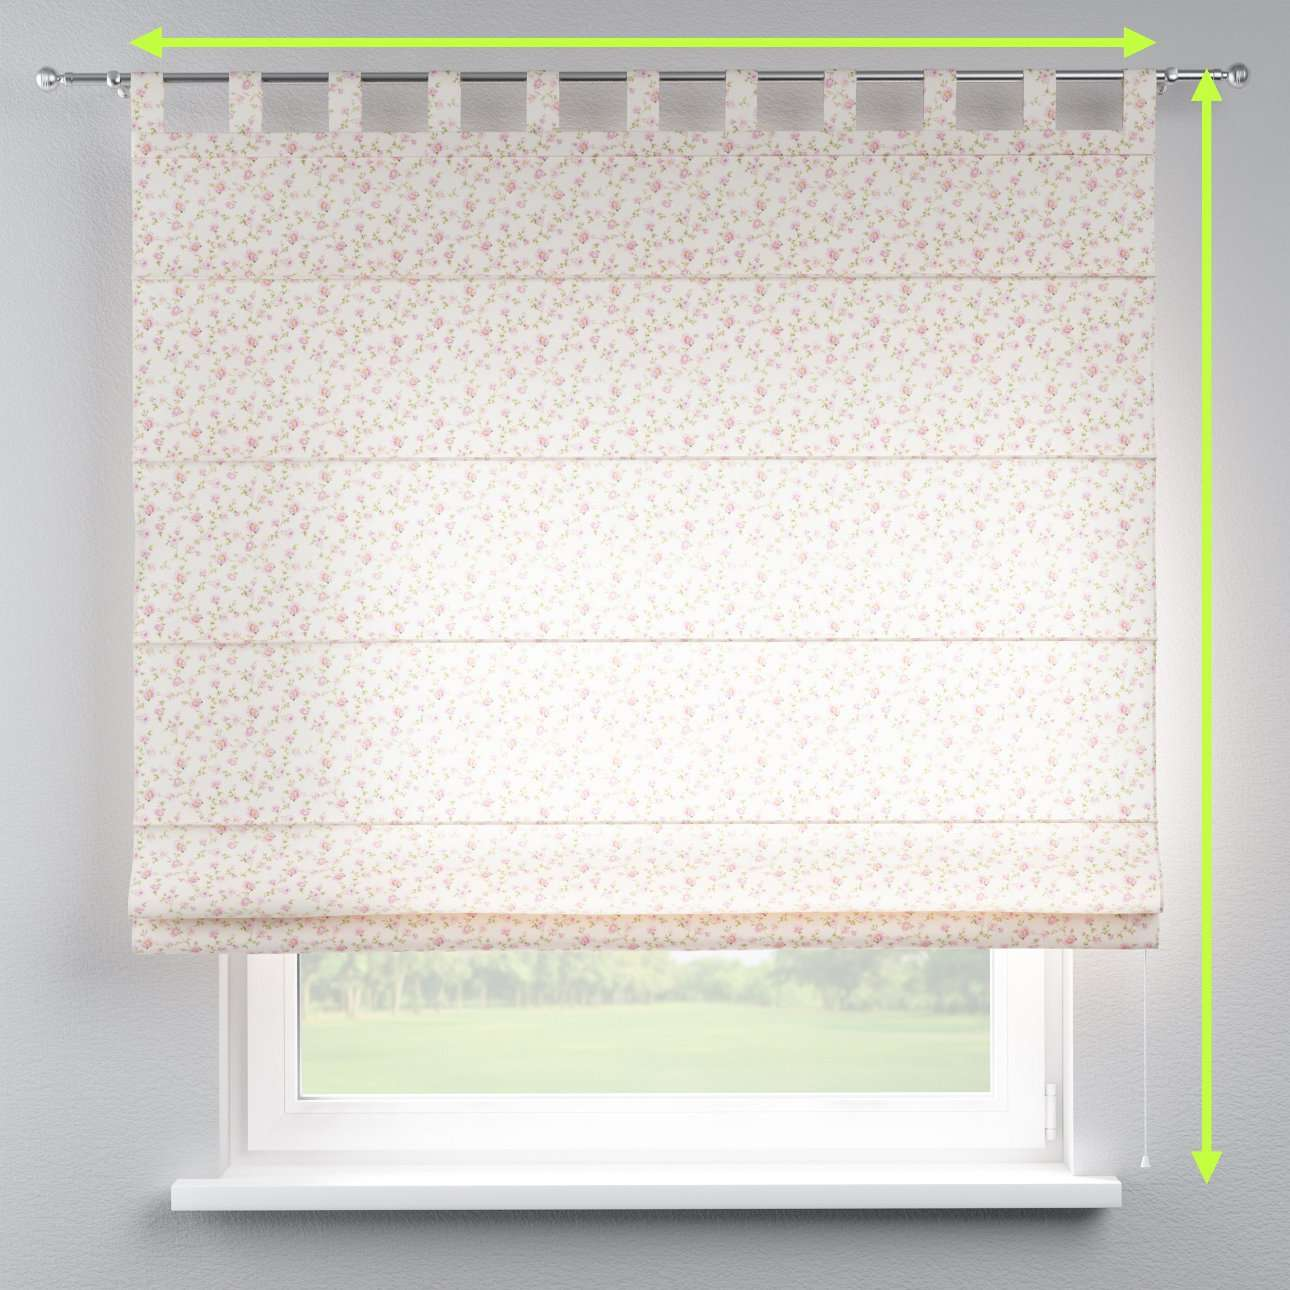 Verona tab top roman blind in collection Ashley, fabric: 137-45